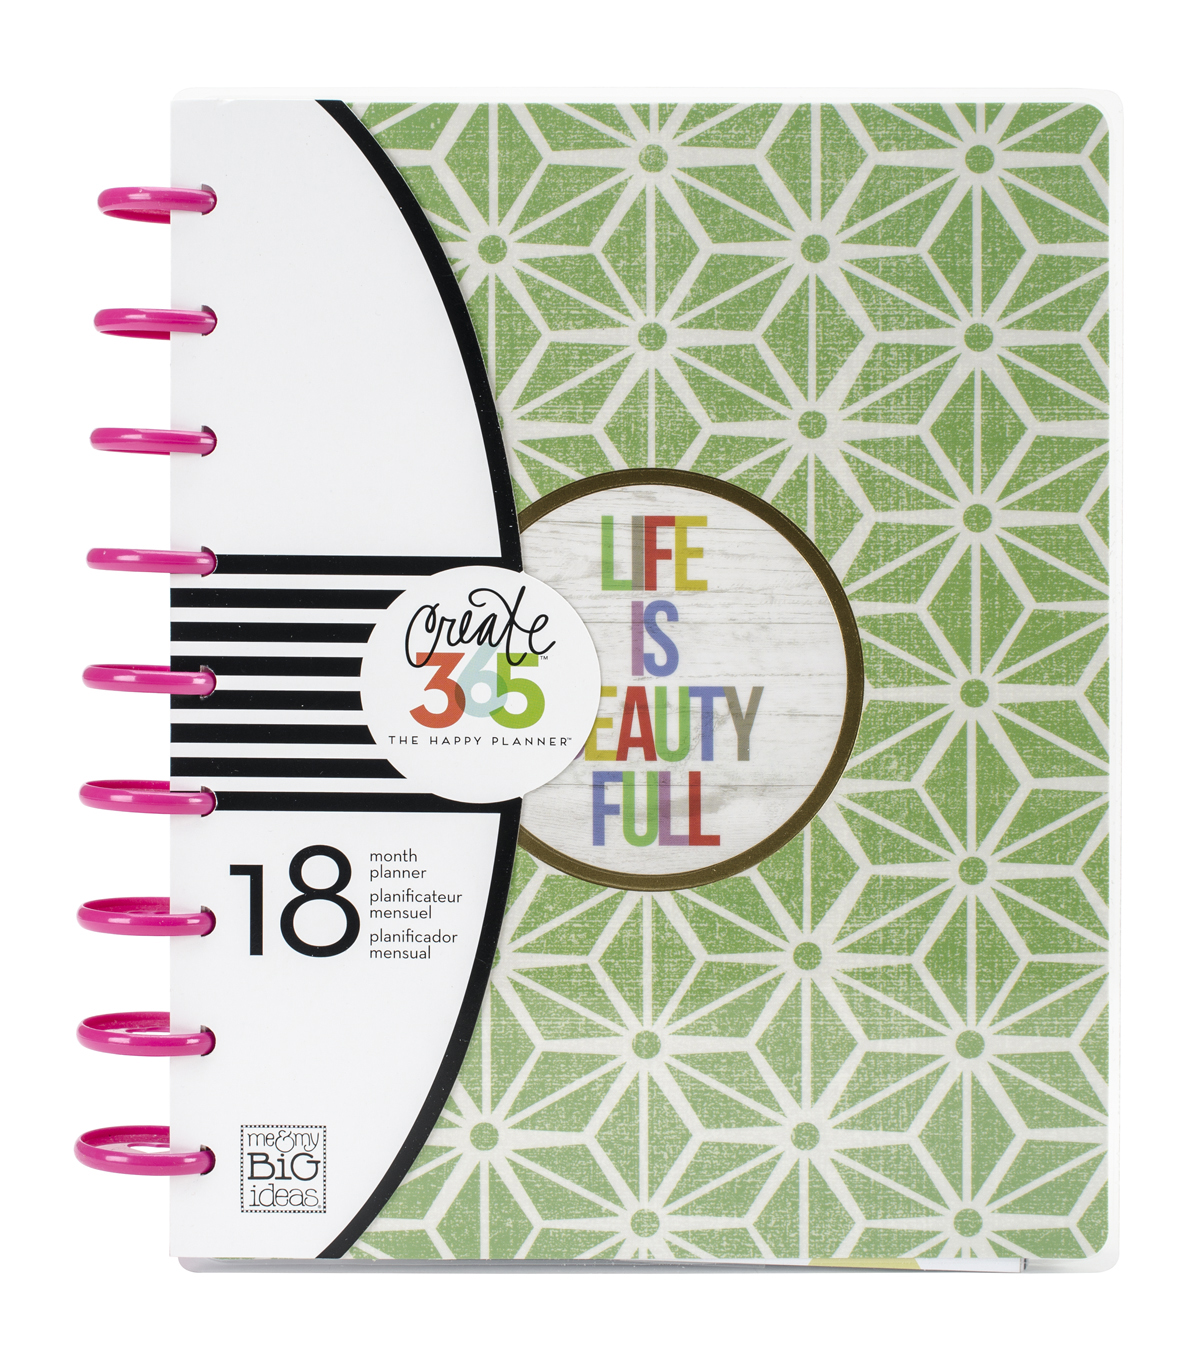 The Happy Planner Beauty Full Planner